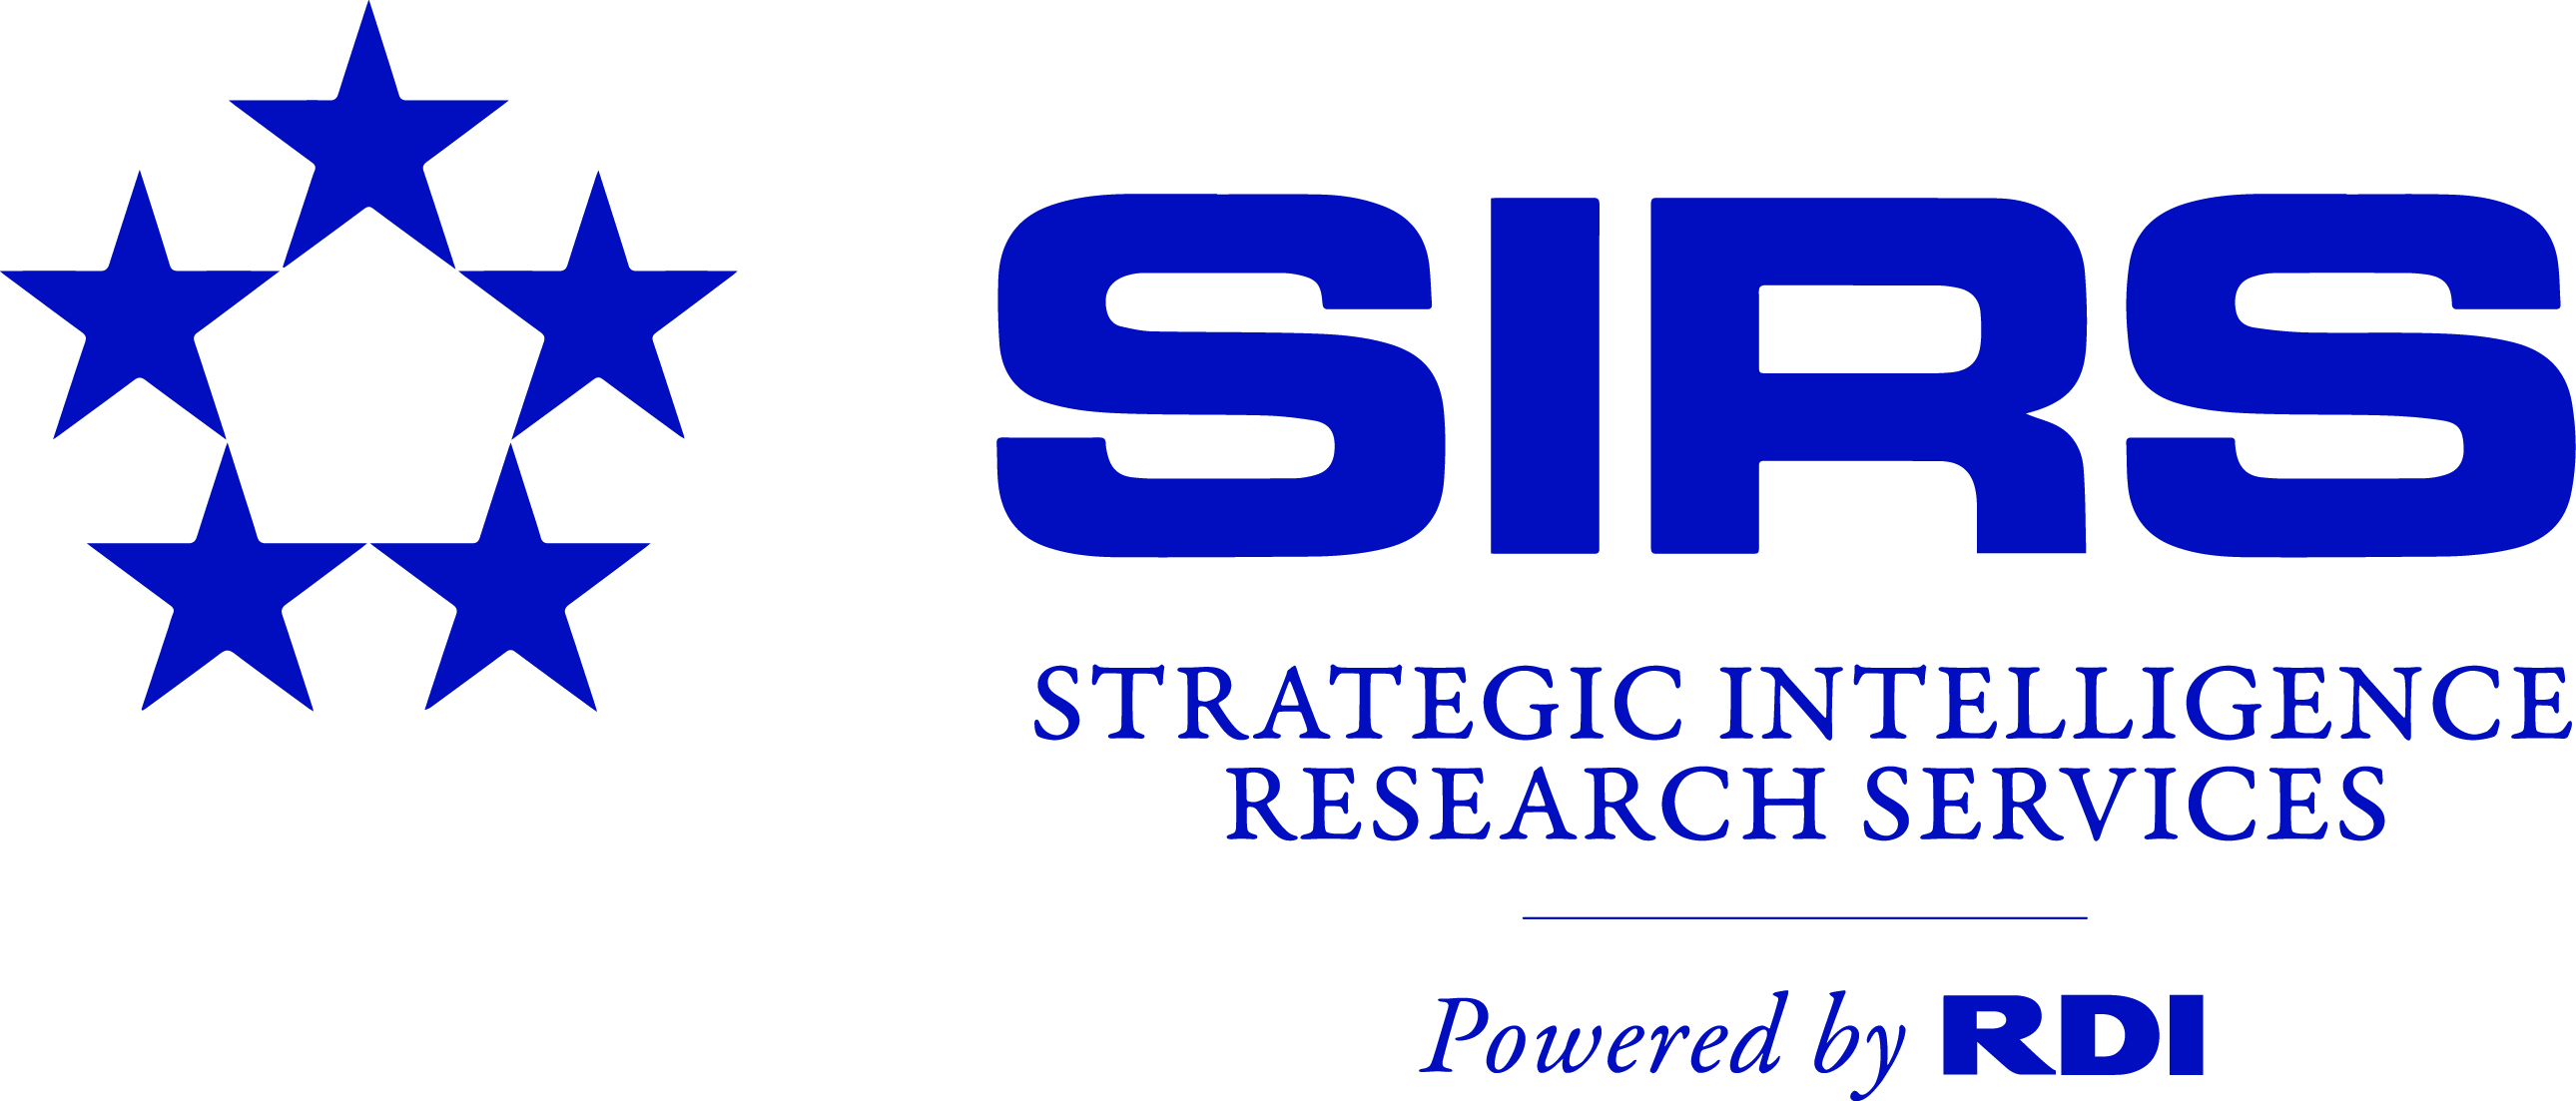 Strategic Intelligence Research Services